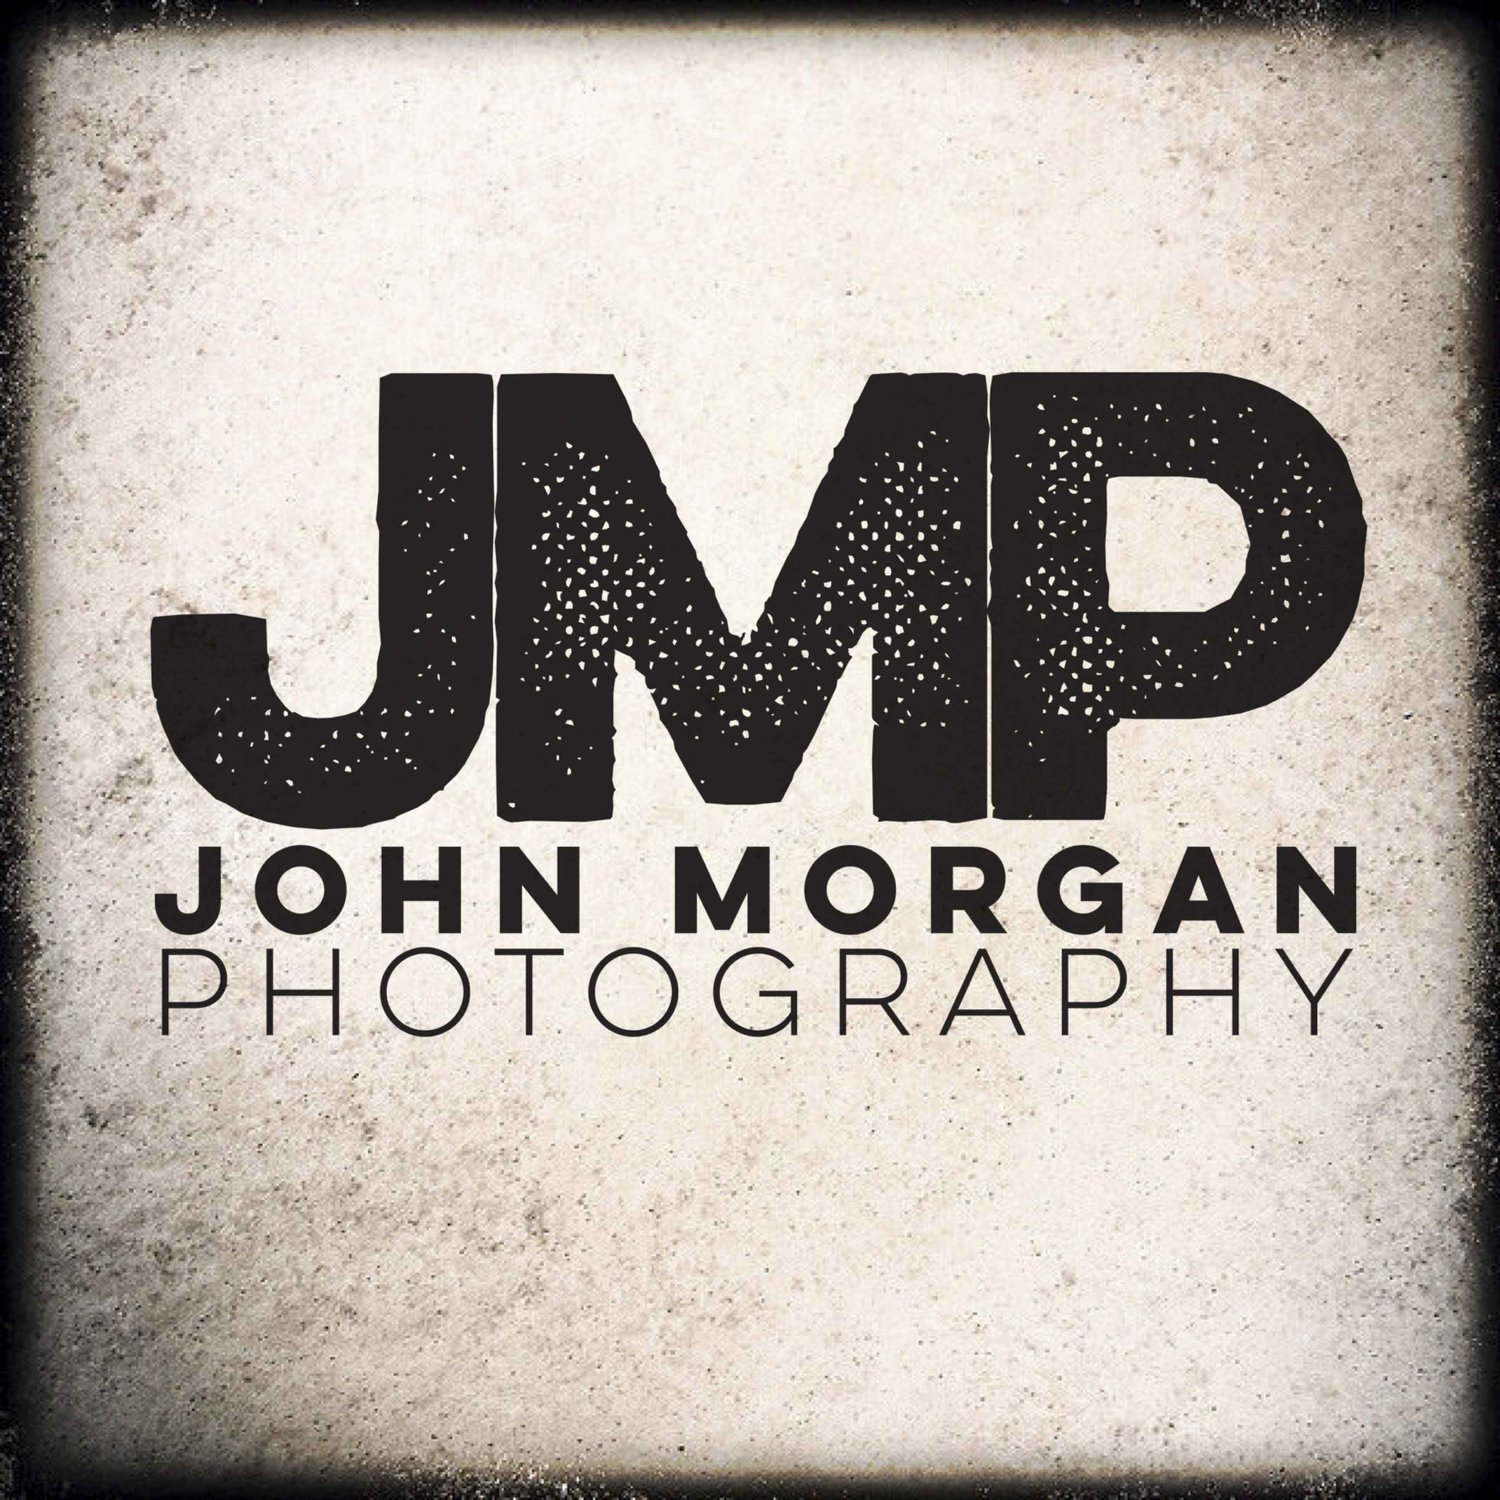 John Morgan Photography